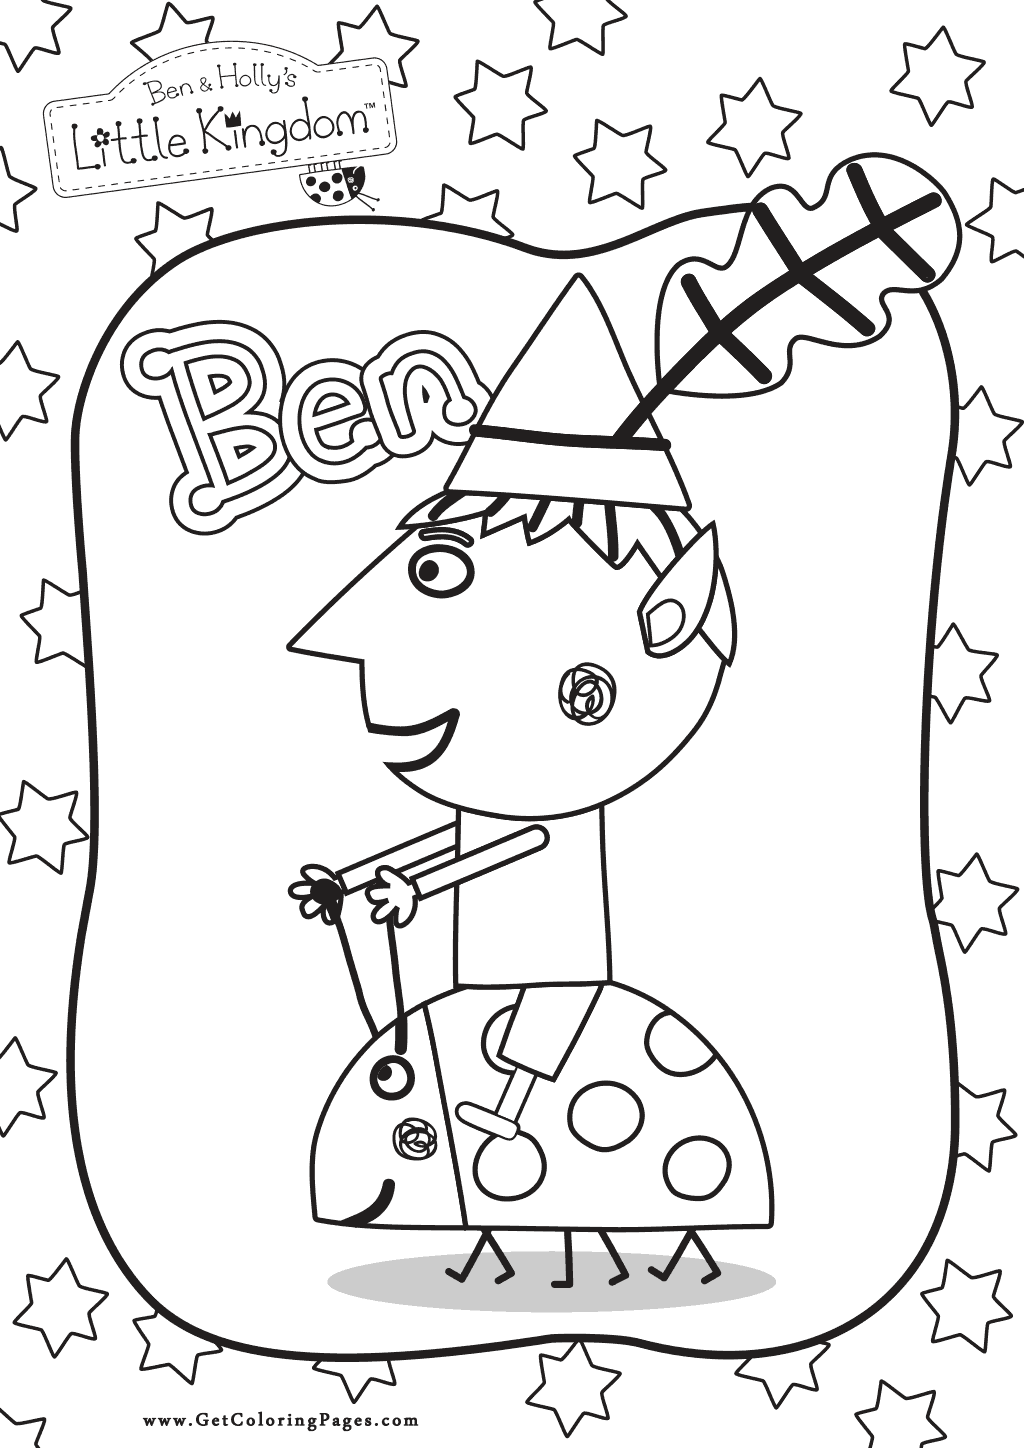 Ben And Holly Drawing at GetDrawings.com | Free for personal use Ben ...